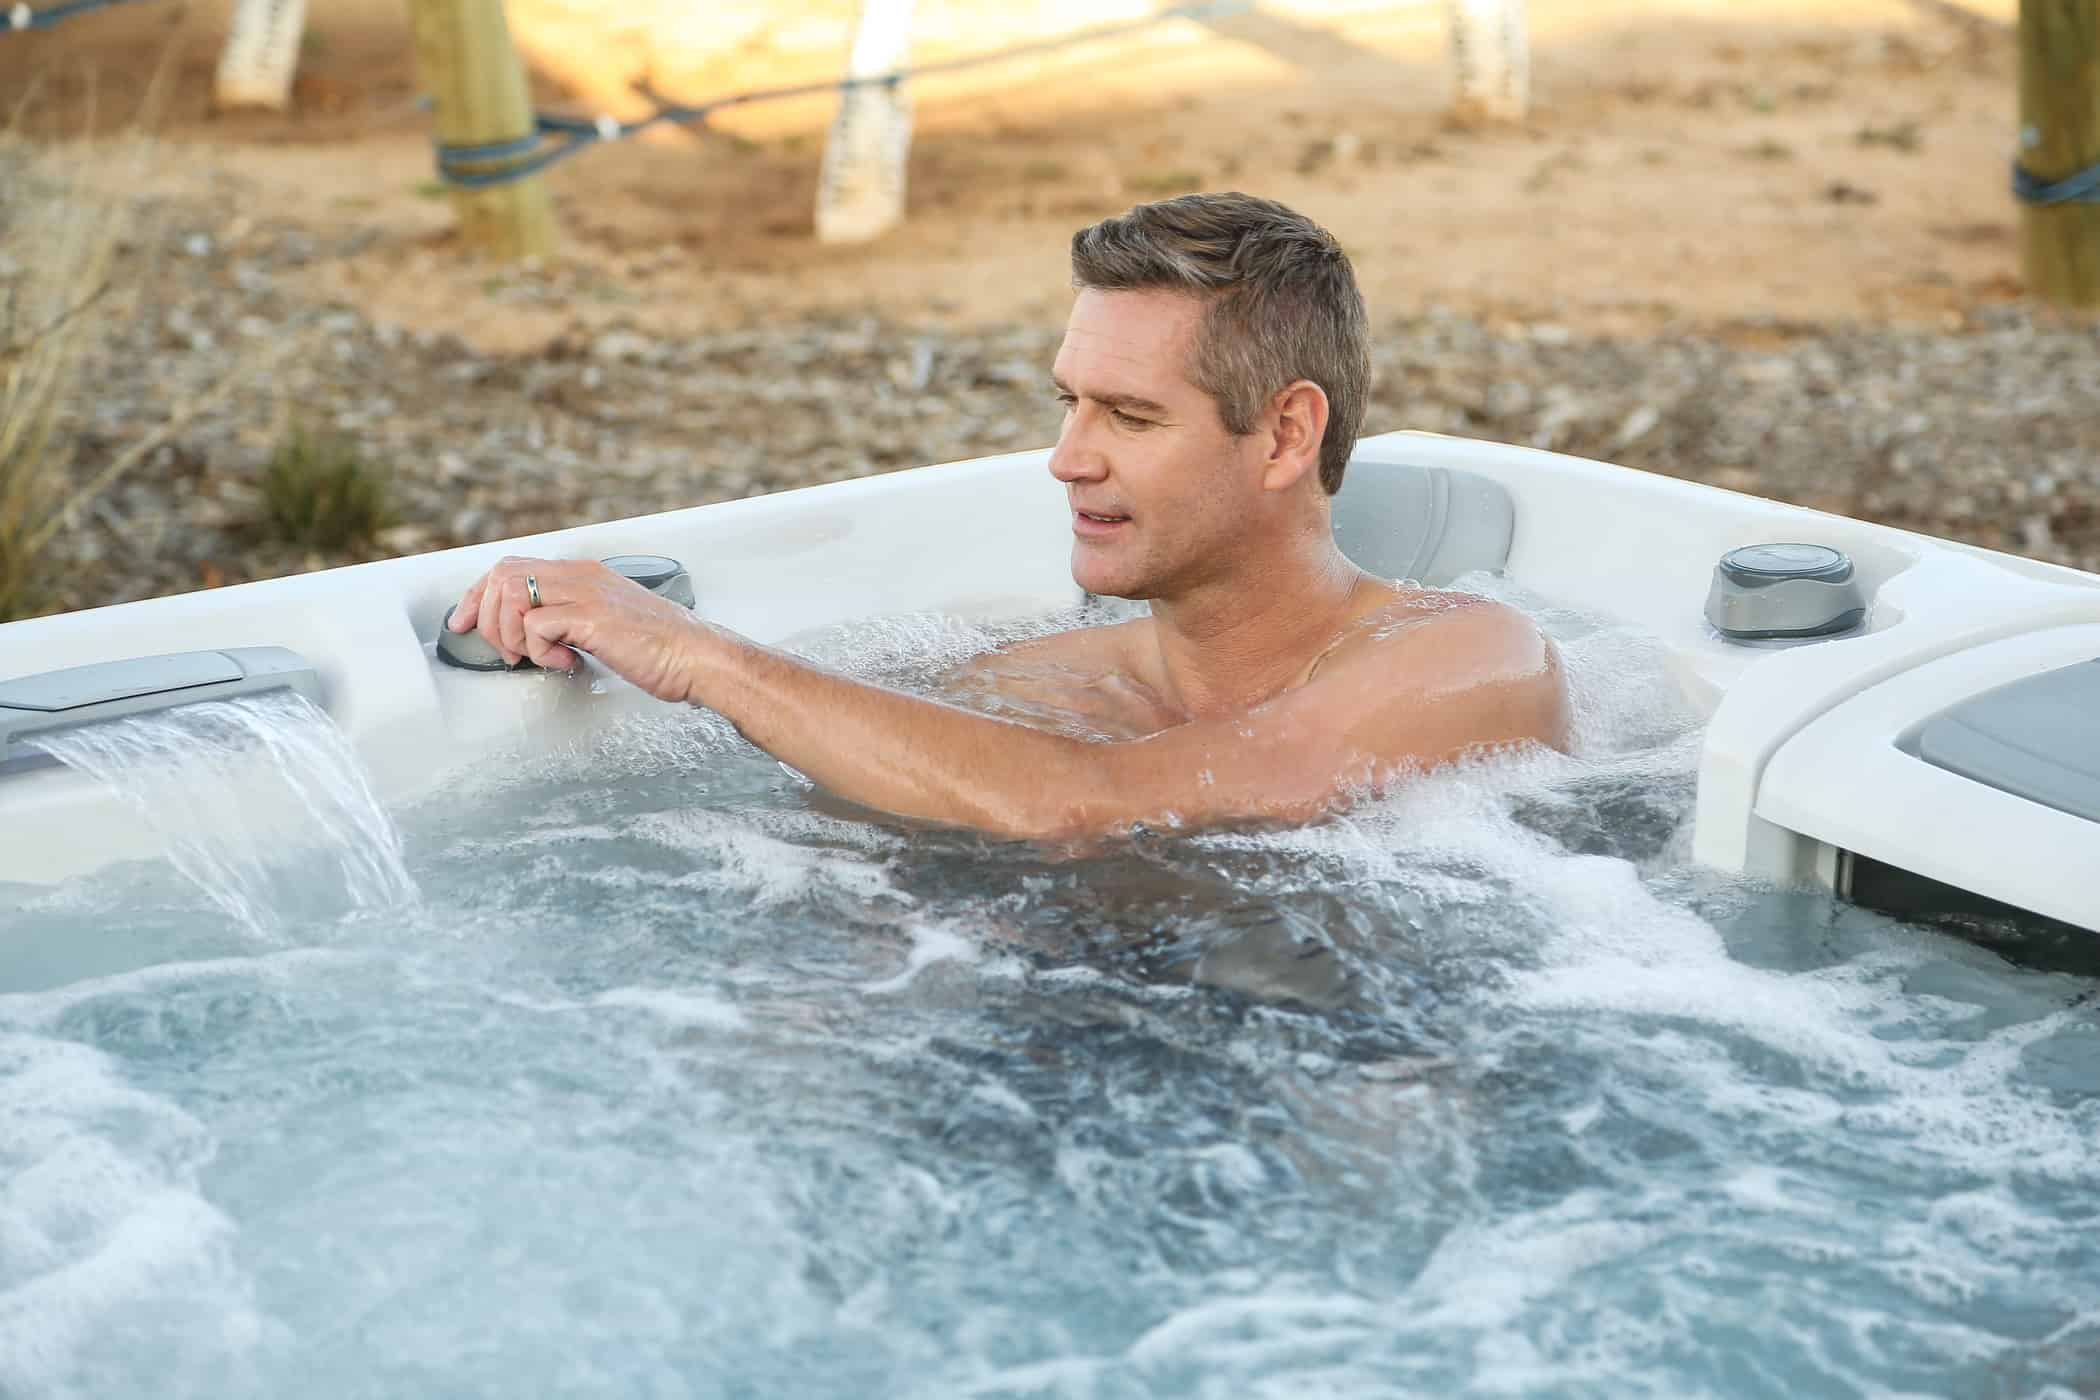 Man soaking in a Sundance Spas hot tub.